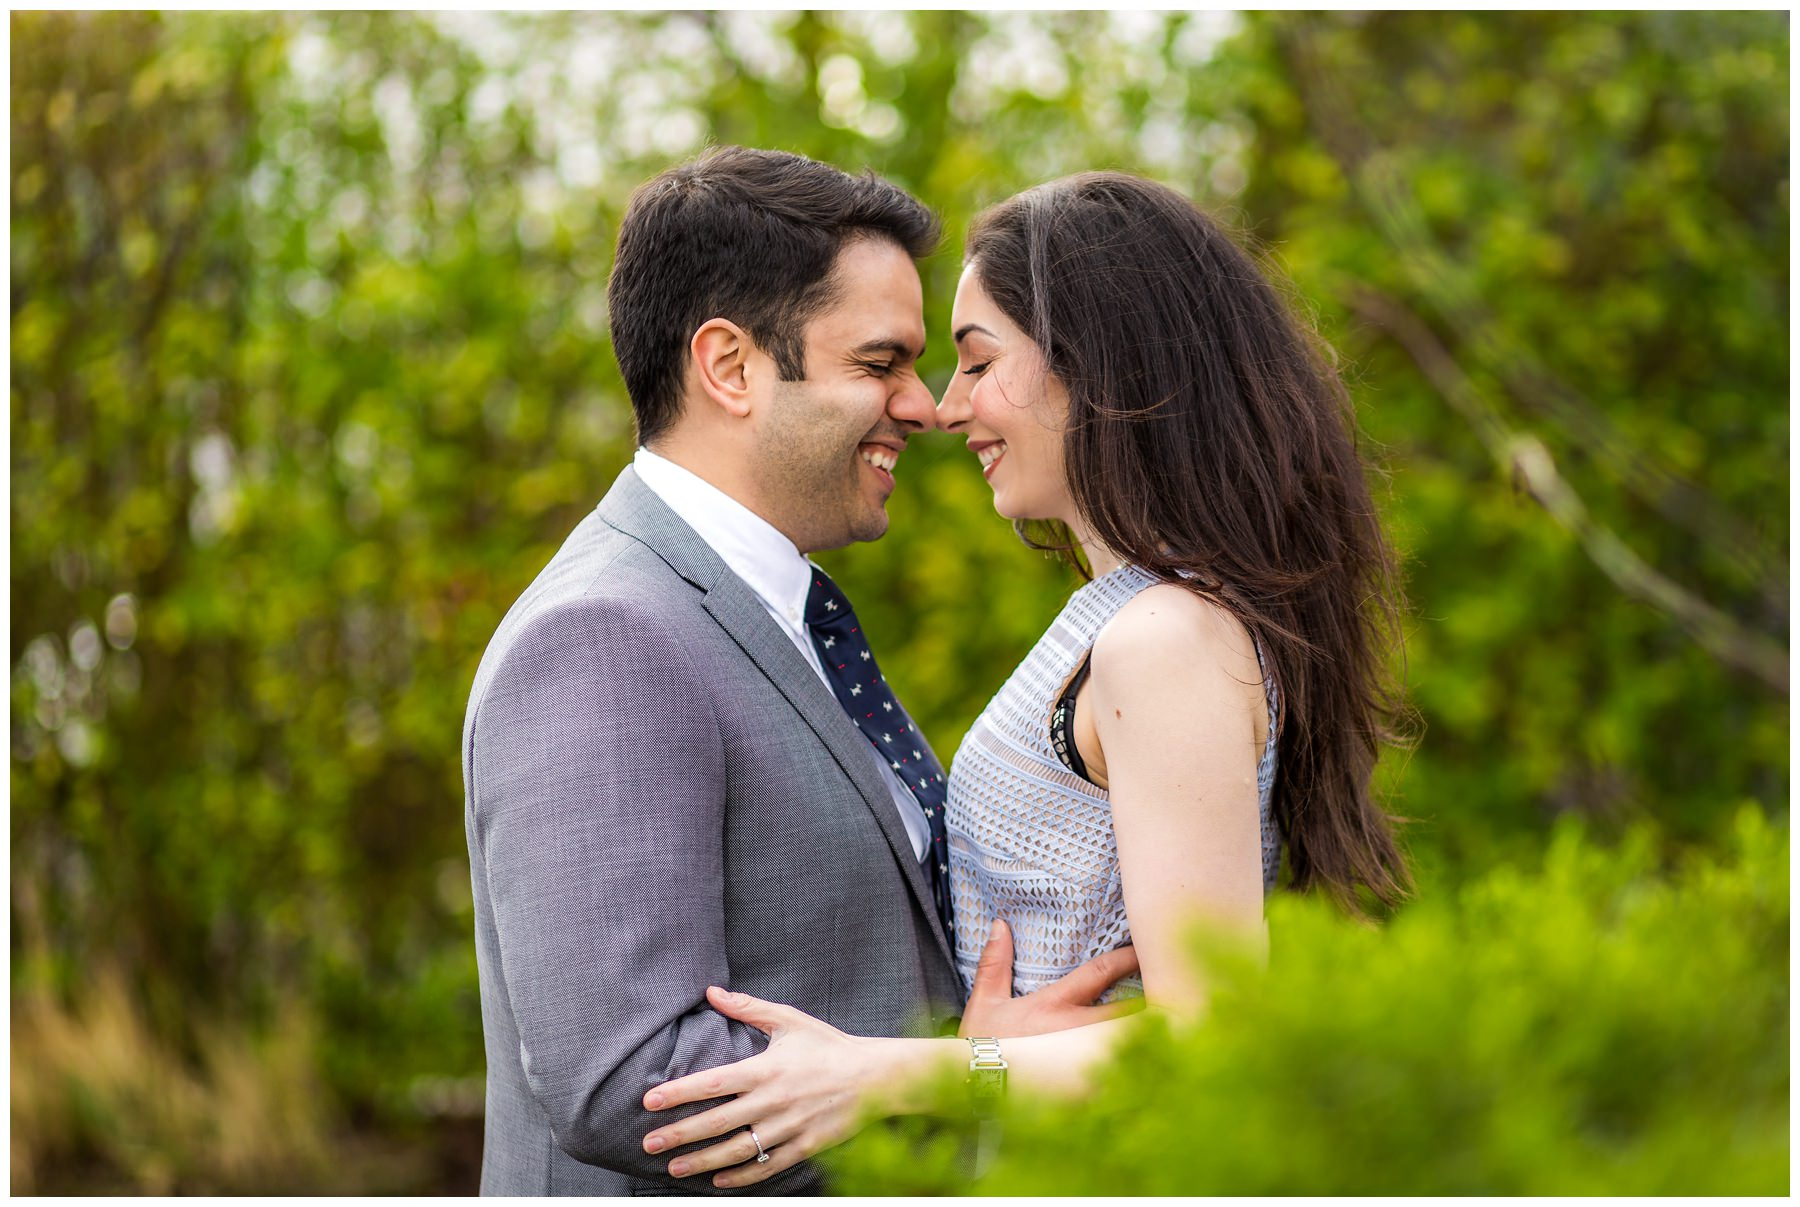 couple face to face with green plant backdrop